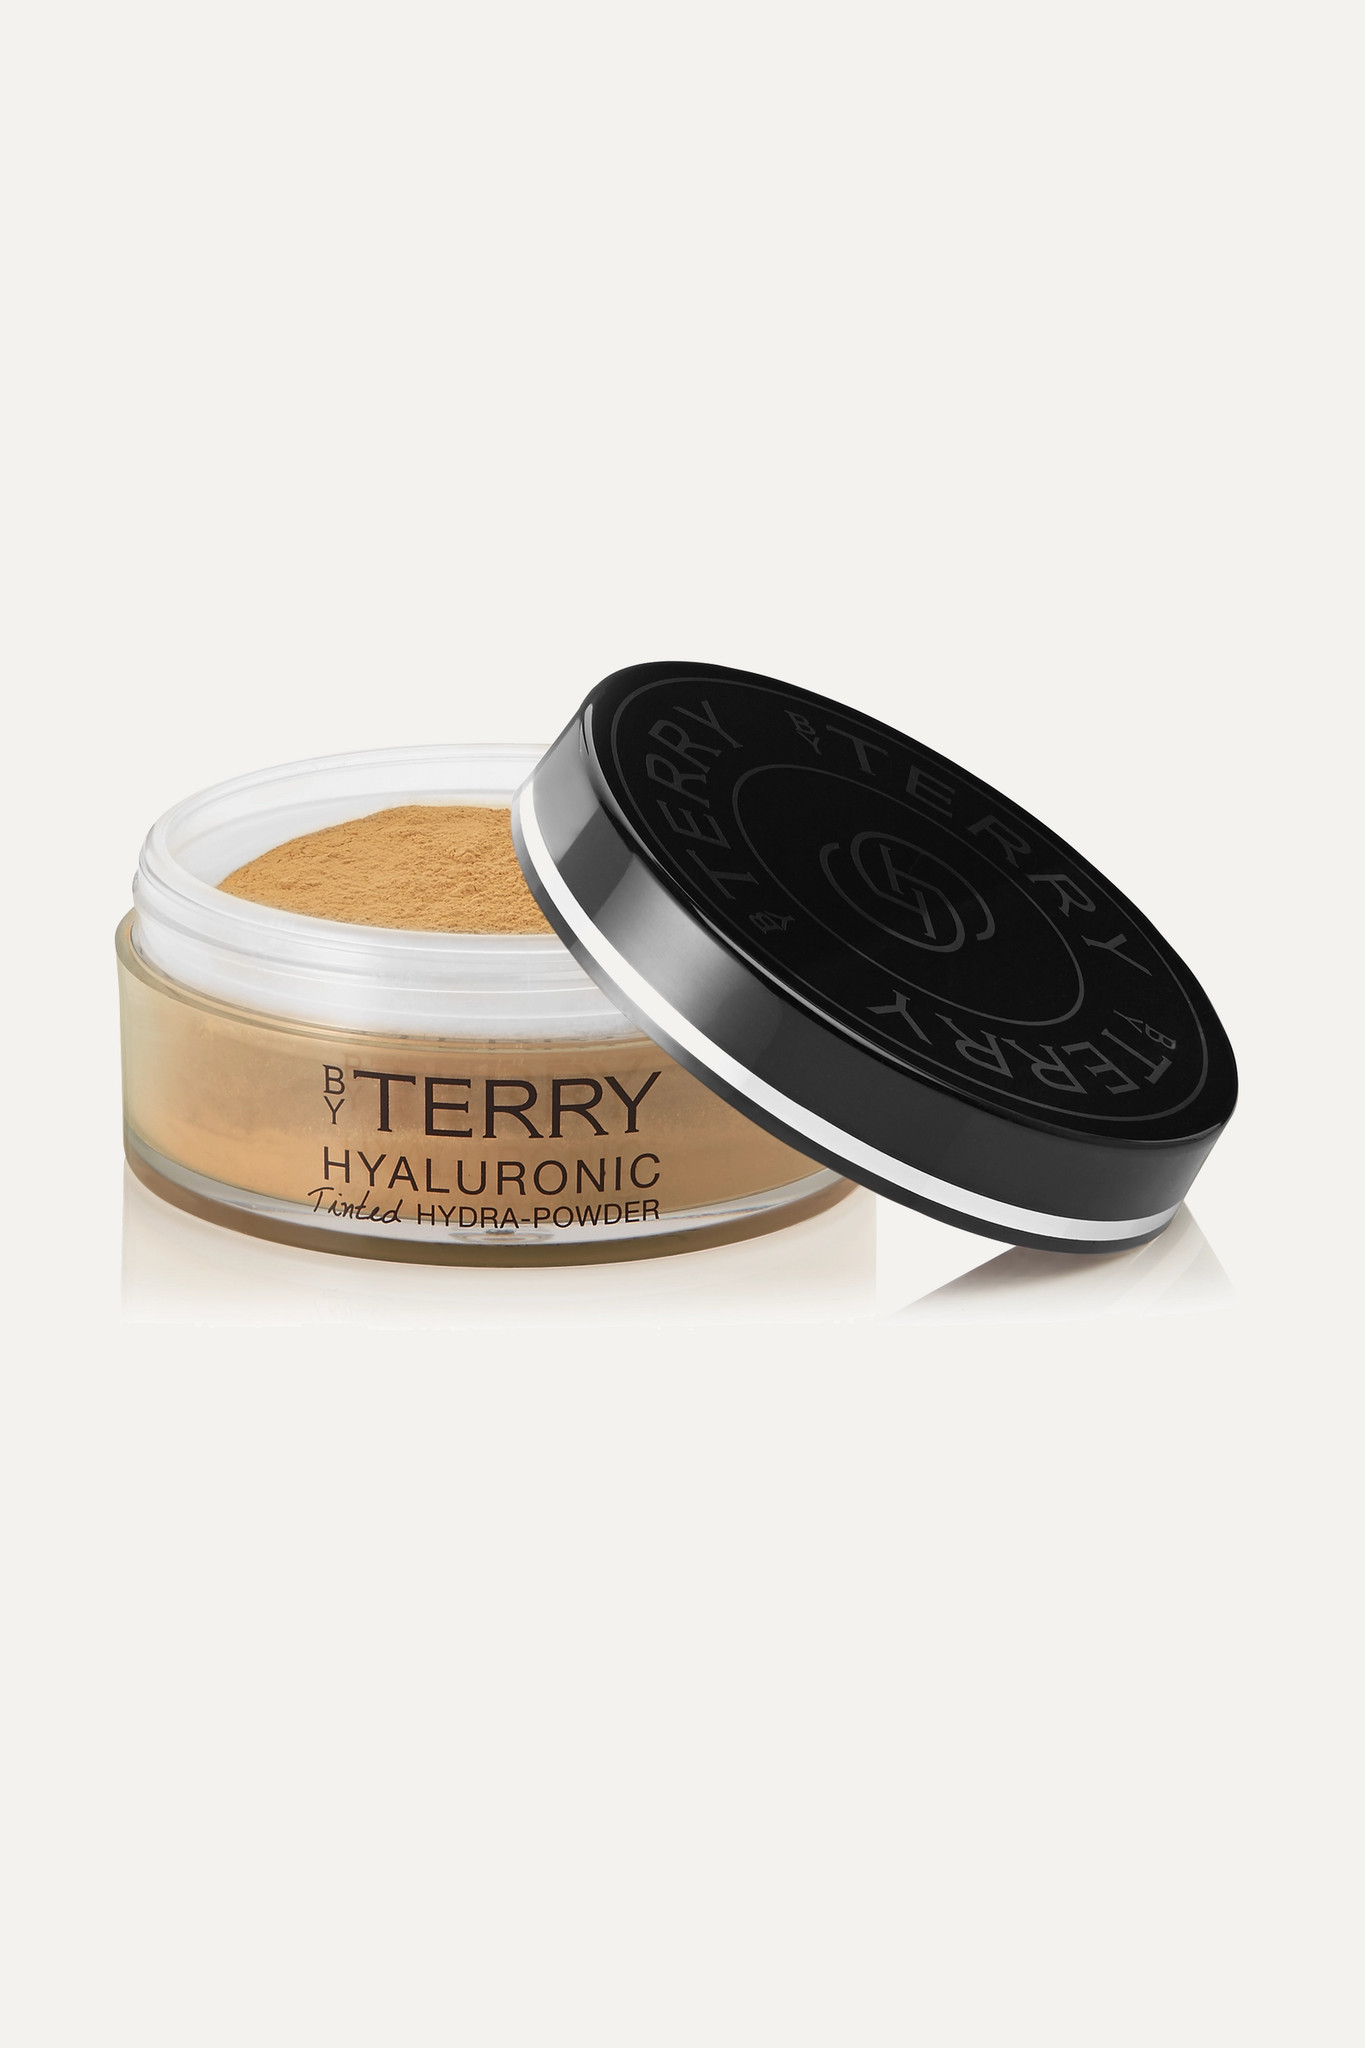 BY TERRY - Hyaluronic Tinted Hydra-powder - Medium Fair No.300 - Neutrals - one size